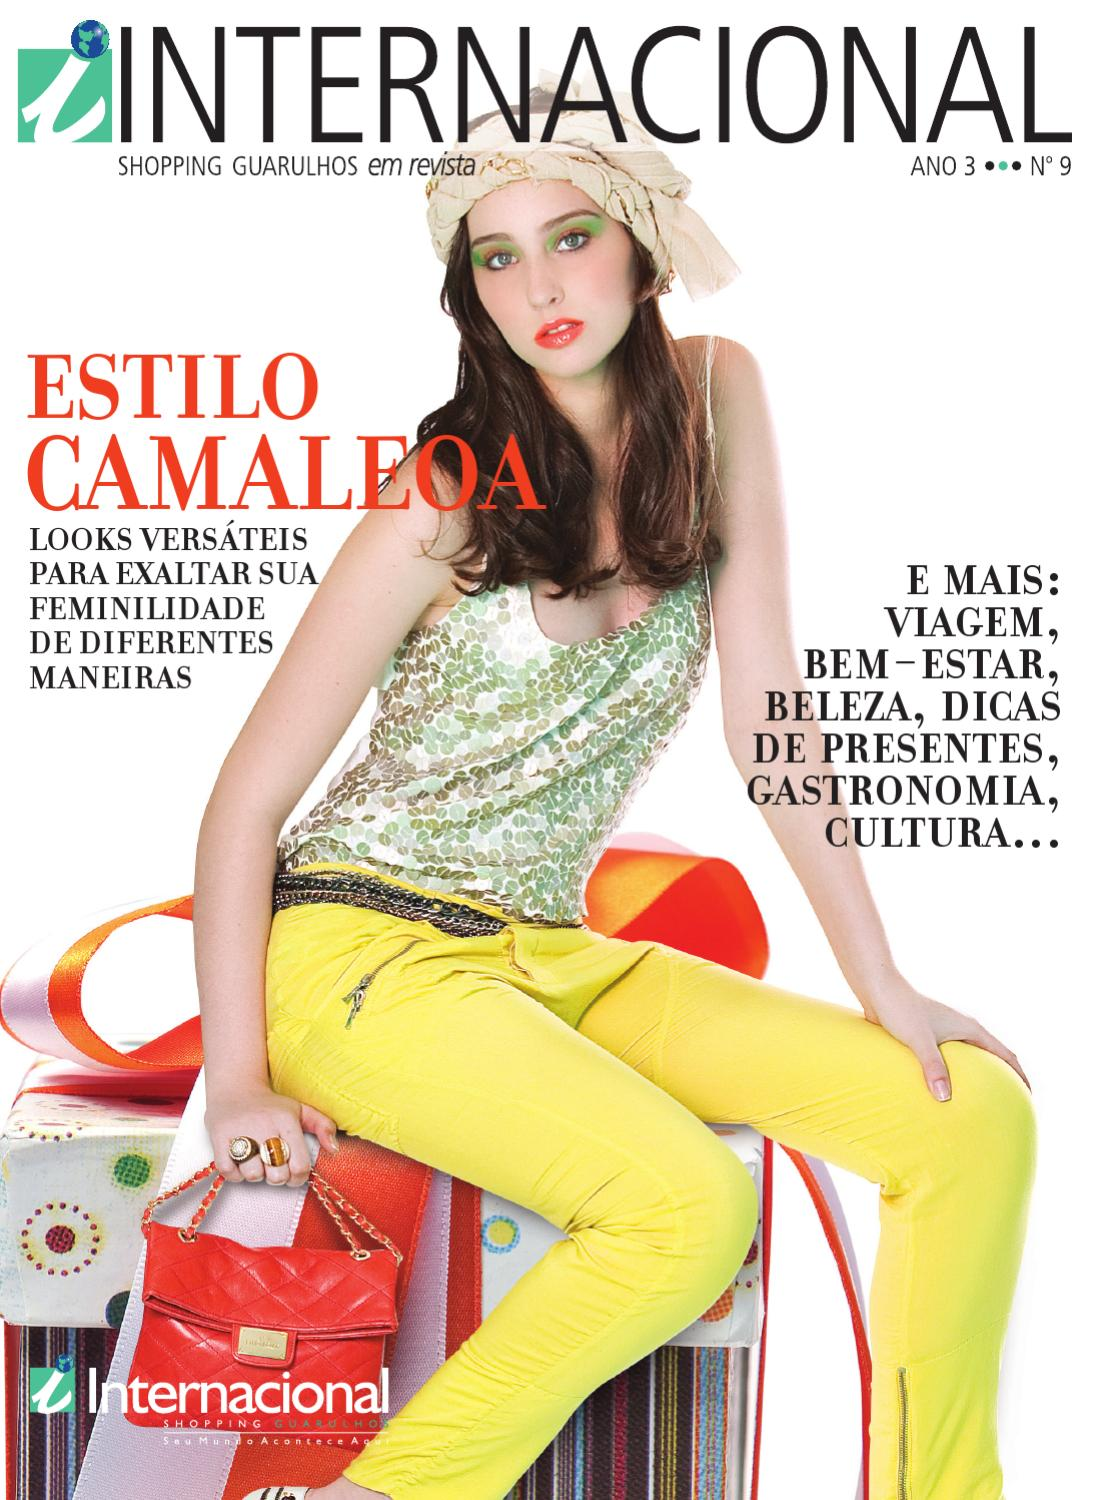 2306b4a923 Revista Internacional Shop. Guarulhos - Ed. 09 by Profashional Editora -  issuu